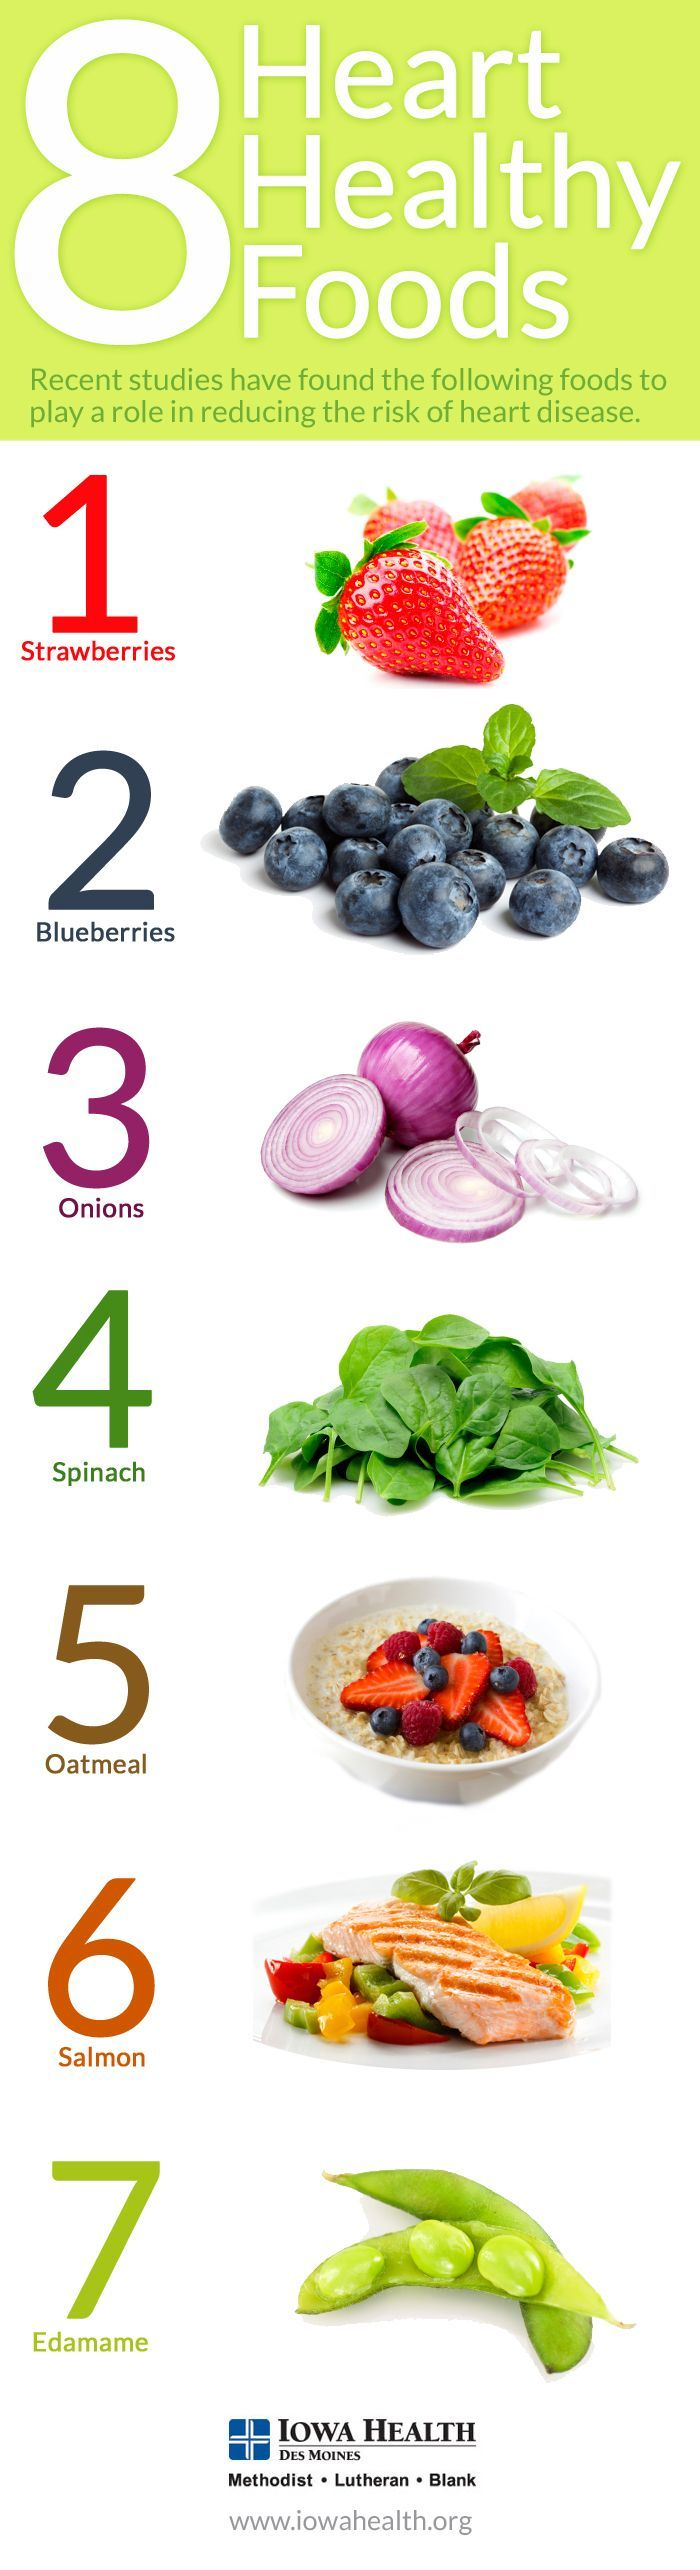 Recent studies have found these eight heart healthy foods to play a role in reducing the risk of heart disease. via www.unitypoint.org/desmoines/default.aspx http://www.www.unitypoint.org/desmoines/default.aspxheart-health-news.aspx?id=1069&Do+Blueberries,+Strawberries+and+Onions+Reduce+Heart+Attack+Risk%3F&utm_content=buffera63af&utm_medium=social&utm_source=pinterest.com&utm_campaign=buffer